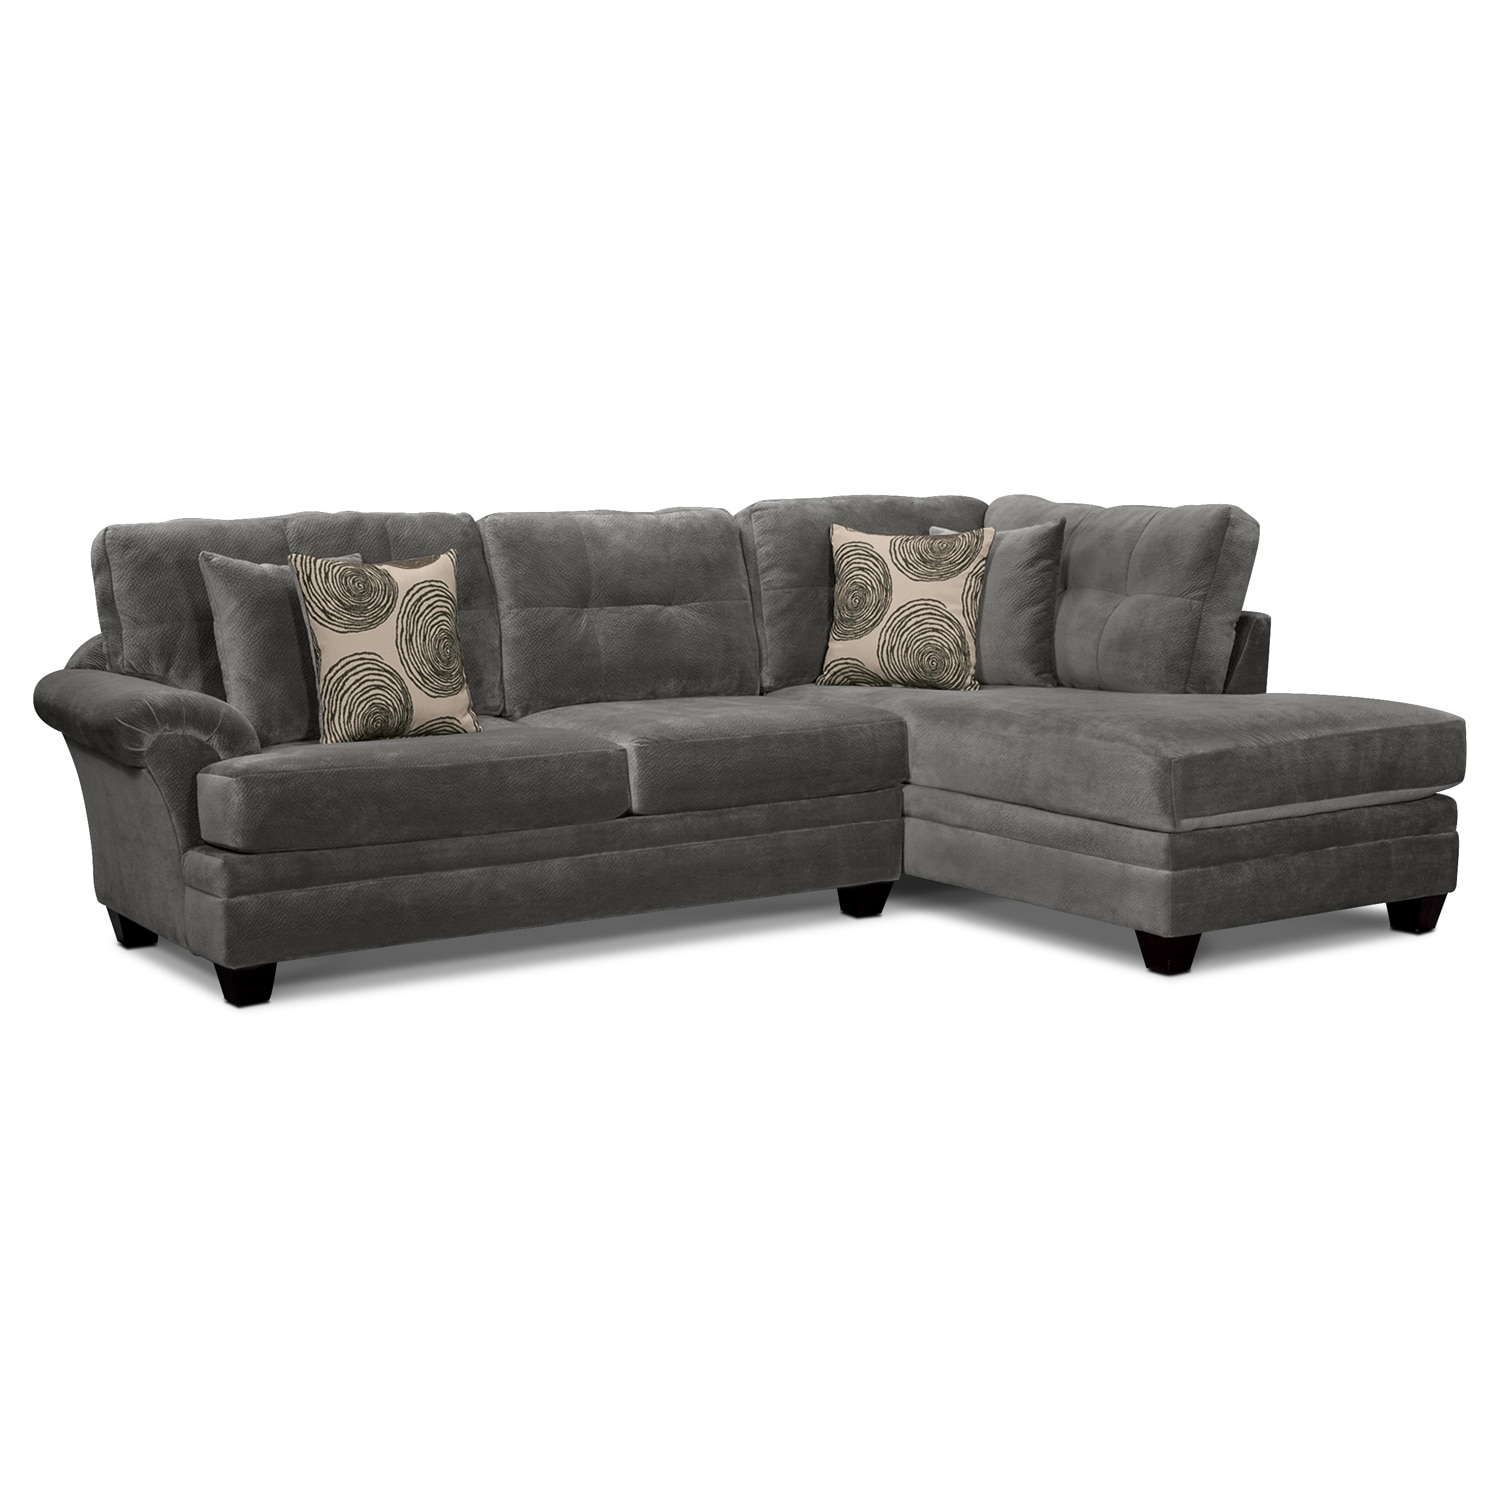 Cordelle 2-Piece Sectional with Chaise | American Signature Furniture